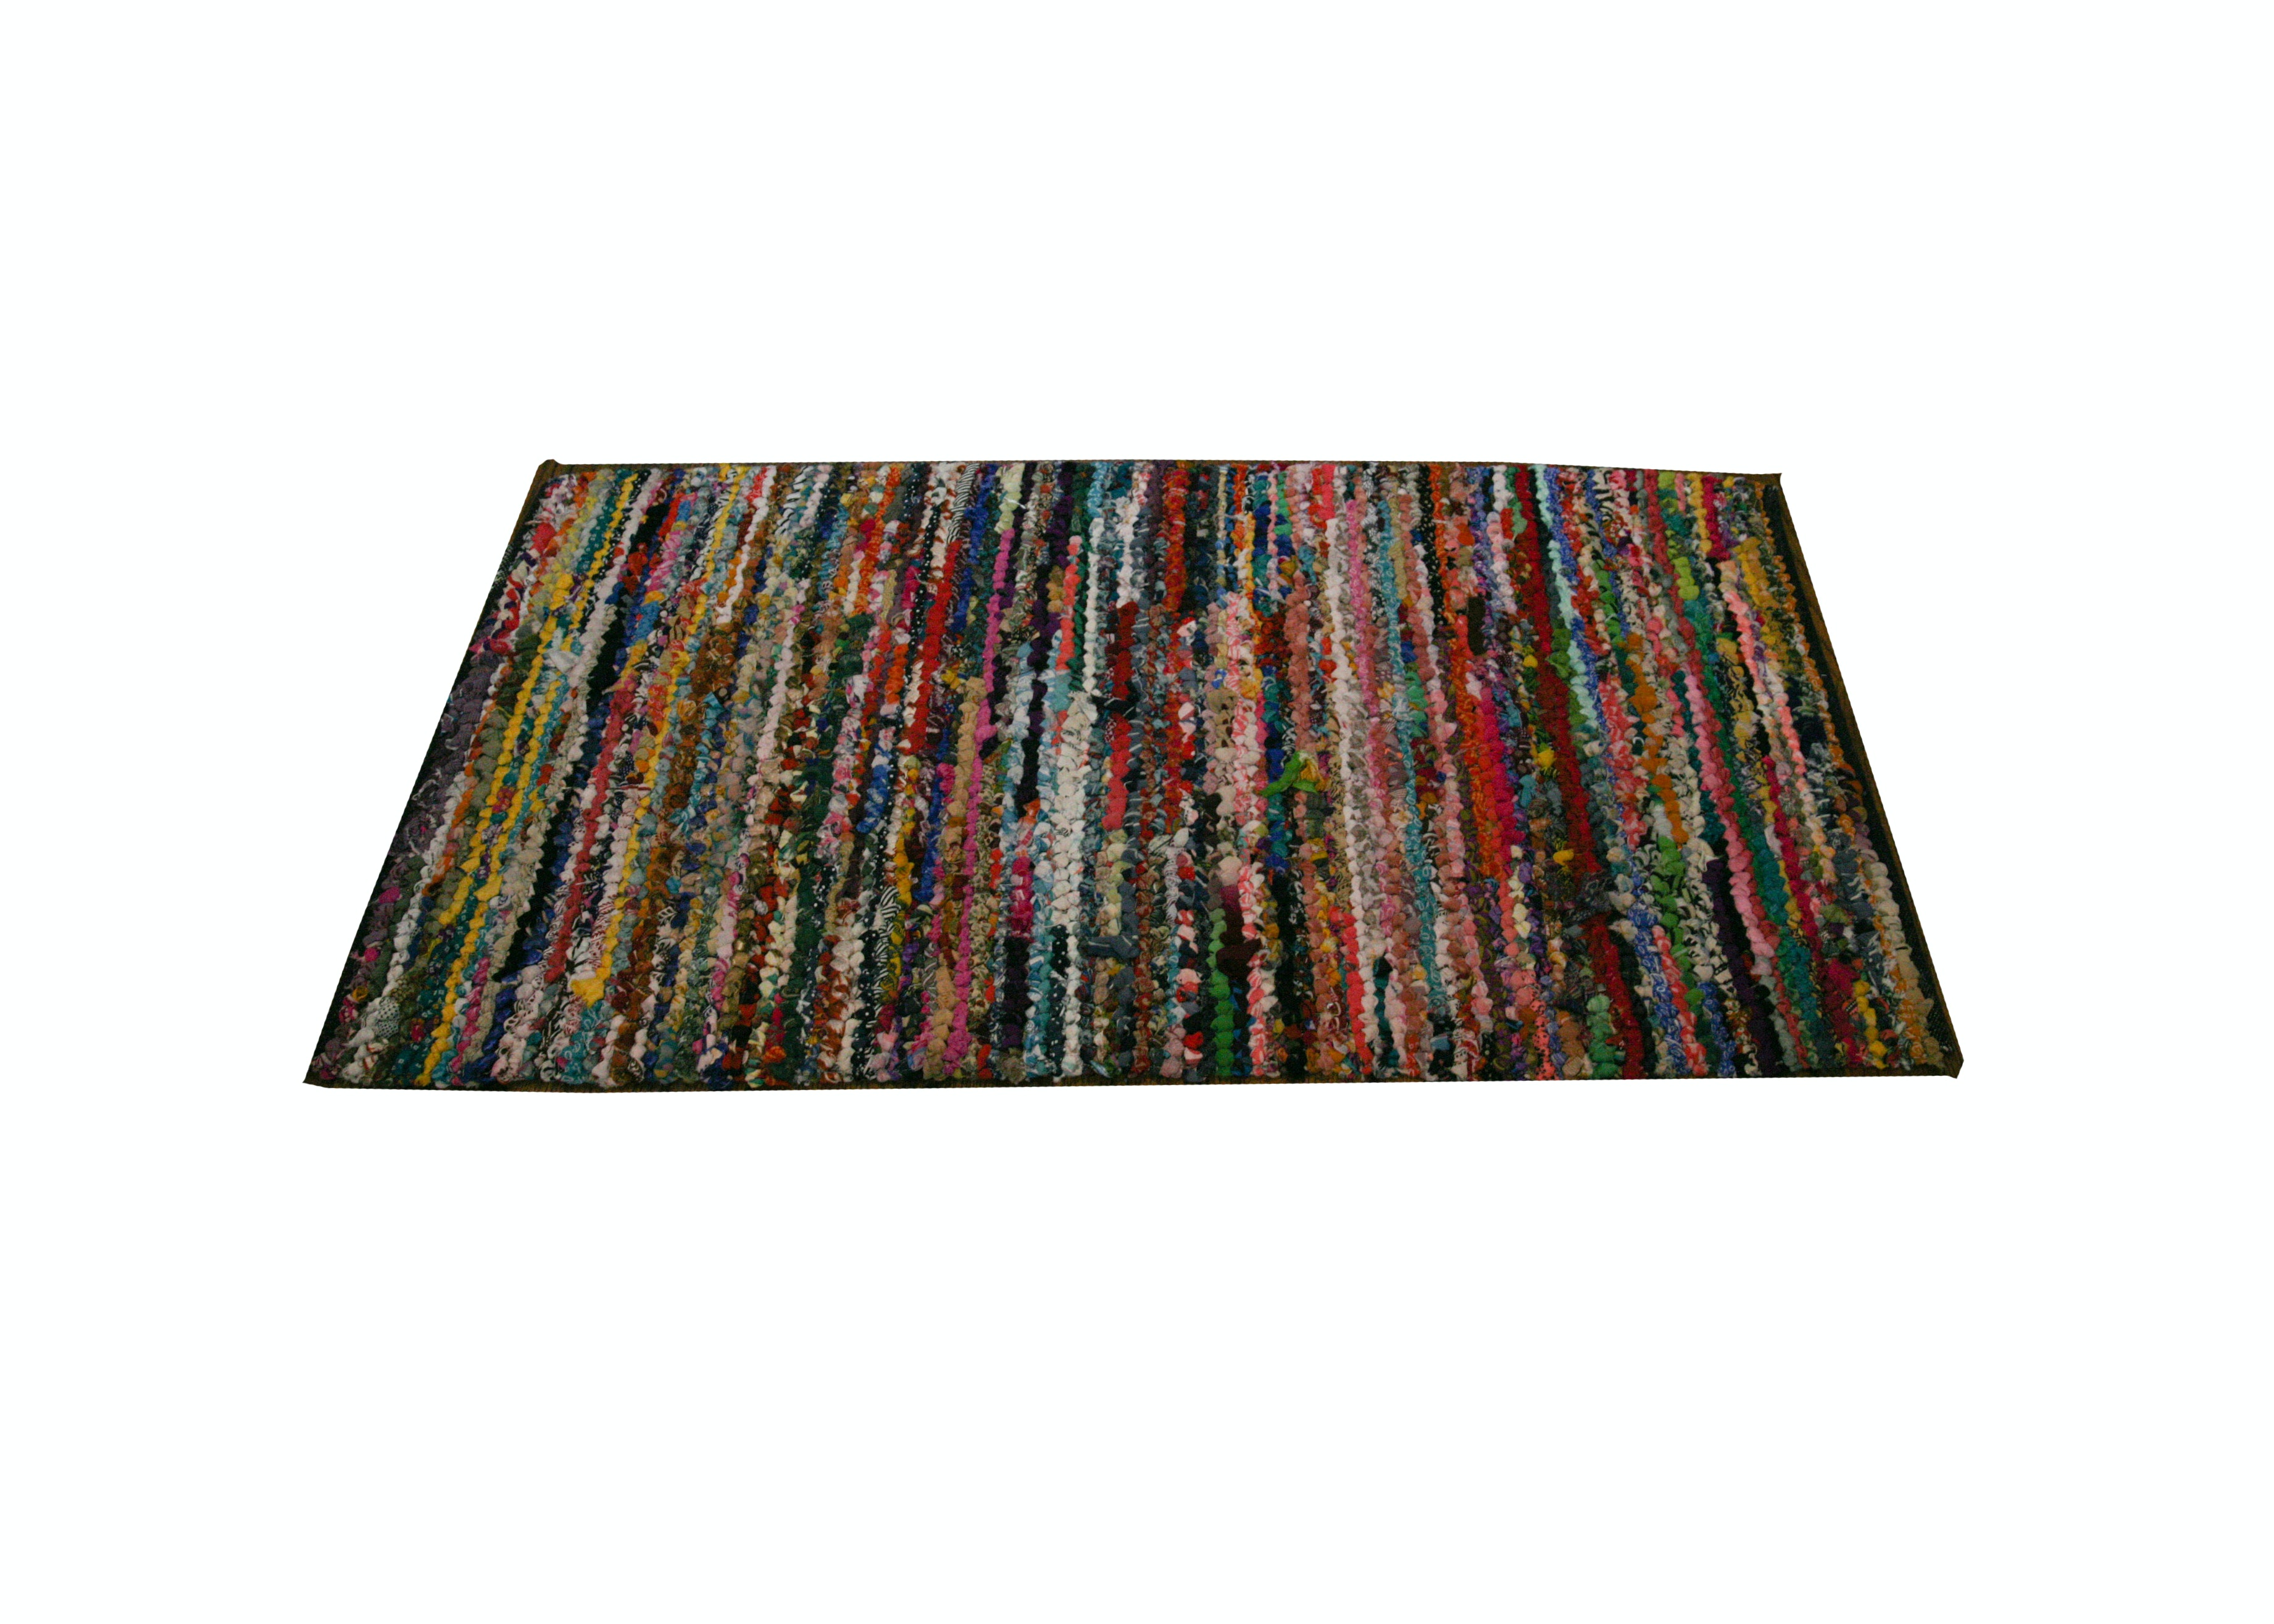 Colorful Woven Flat Weave Area Rug Ebth